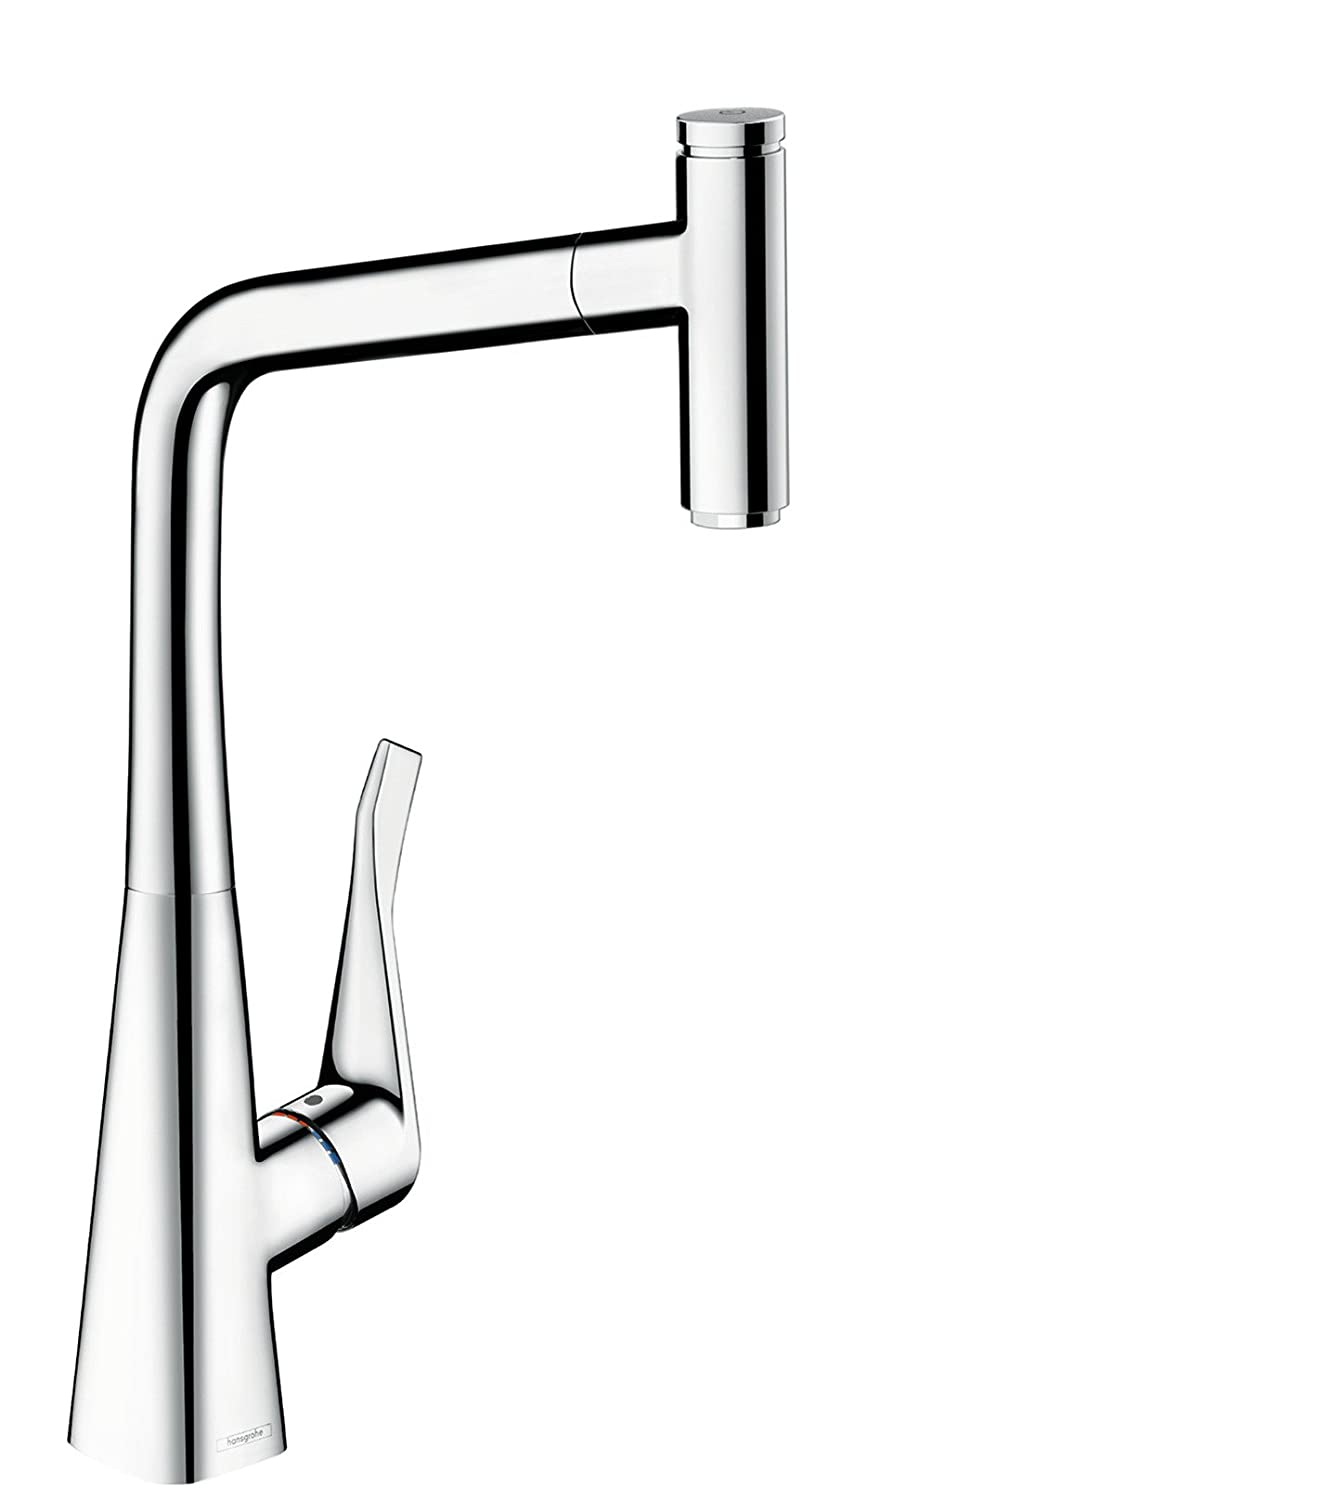 Amazon.com: Hansgrohe Metris Select Kitchen Sink Mixer Tap With Pull ...